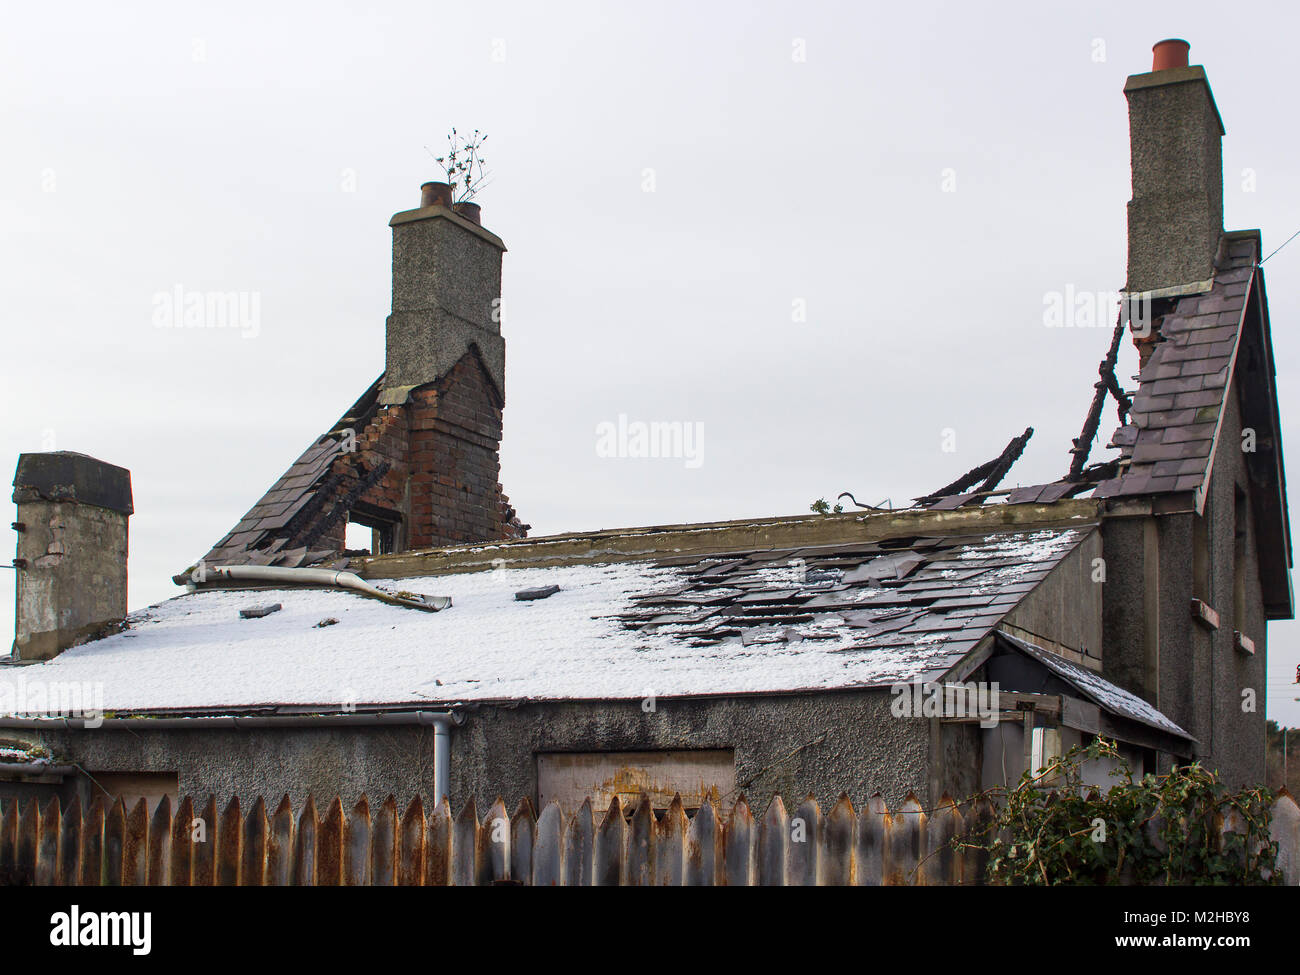 A small detached bungalow totally destroyed by a fire in Bangor Northern Ireland and needing to be demolished - Stock Image